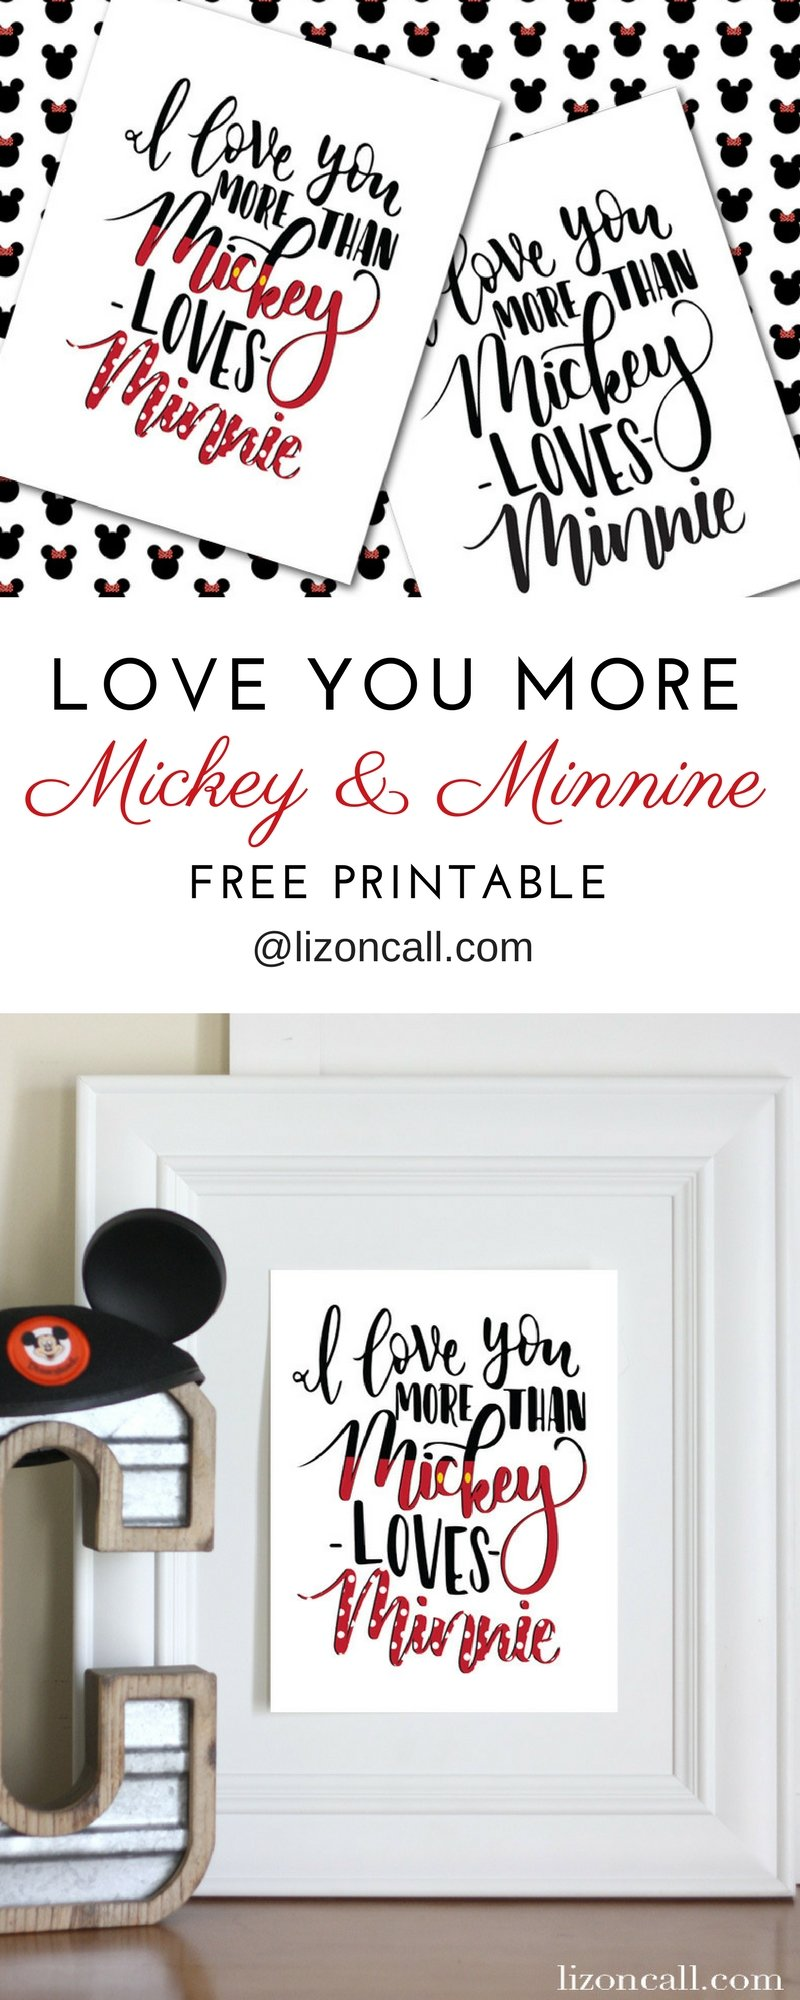 http://lizoncall.com/wp-content/uploads/2017/02/Mickey-loves-MInnie-Print-pin.jpg